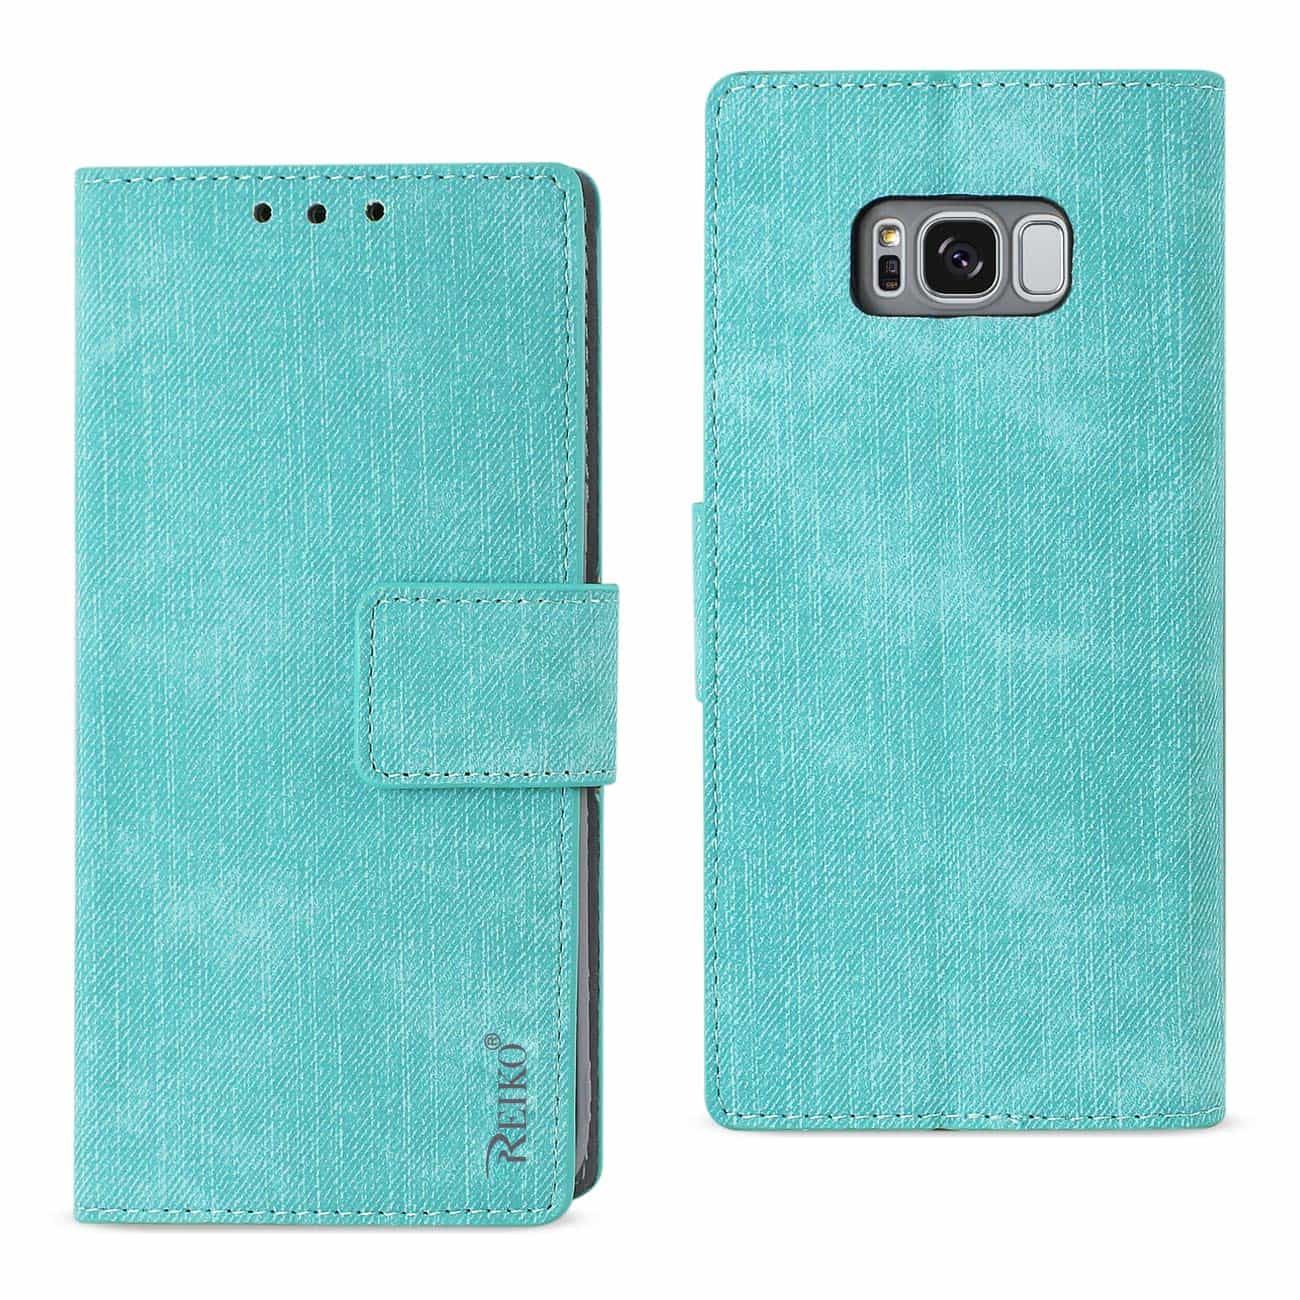 SAMSUNG S8 EDGE/ S8 PLUS DENIM WALLET CASE WITH GUMMY INNER SHELL AND KICKSTAND FUNCTION IN BLUE